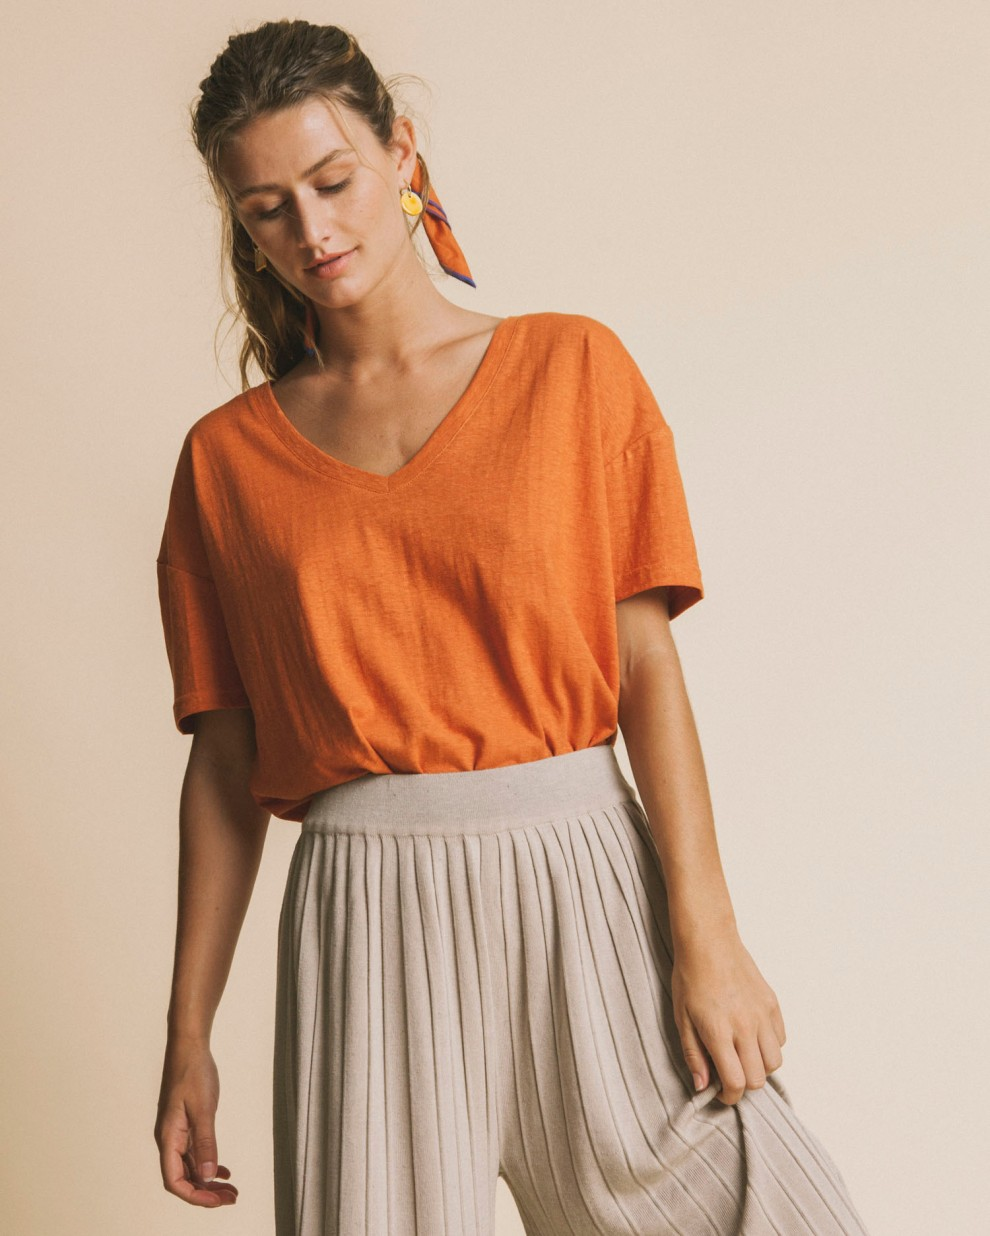 Camiseta terracotta hemp Chloe